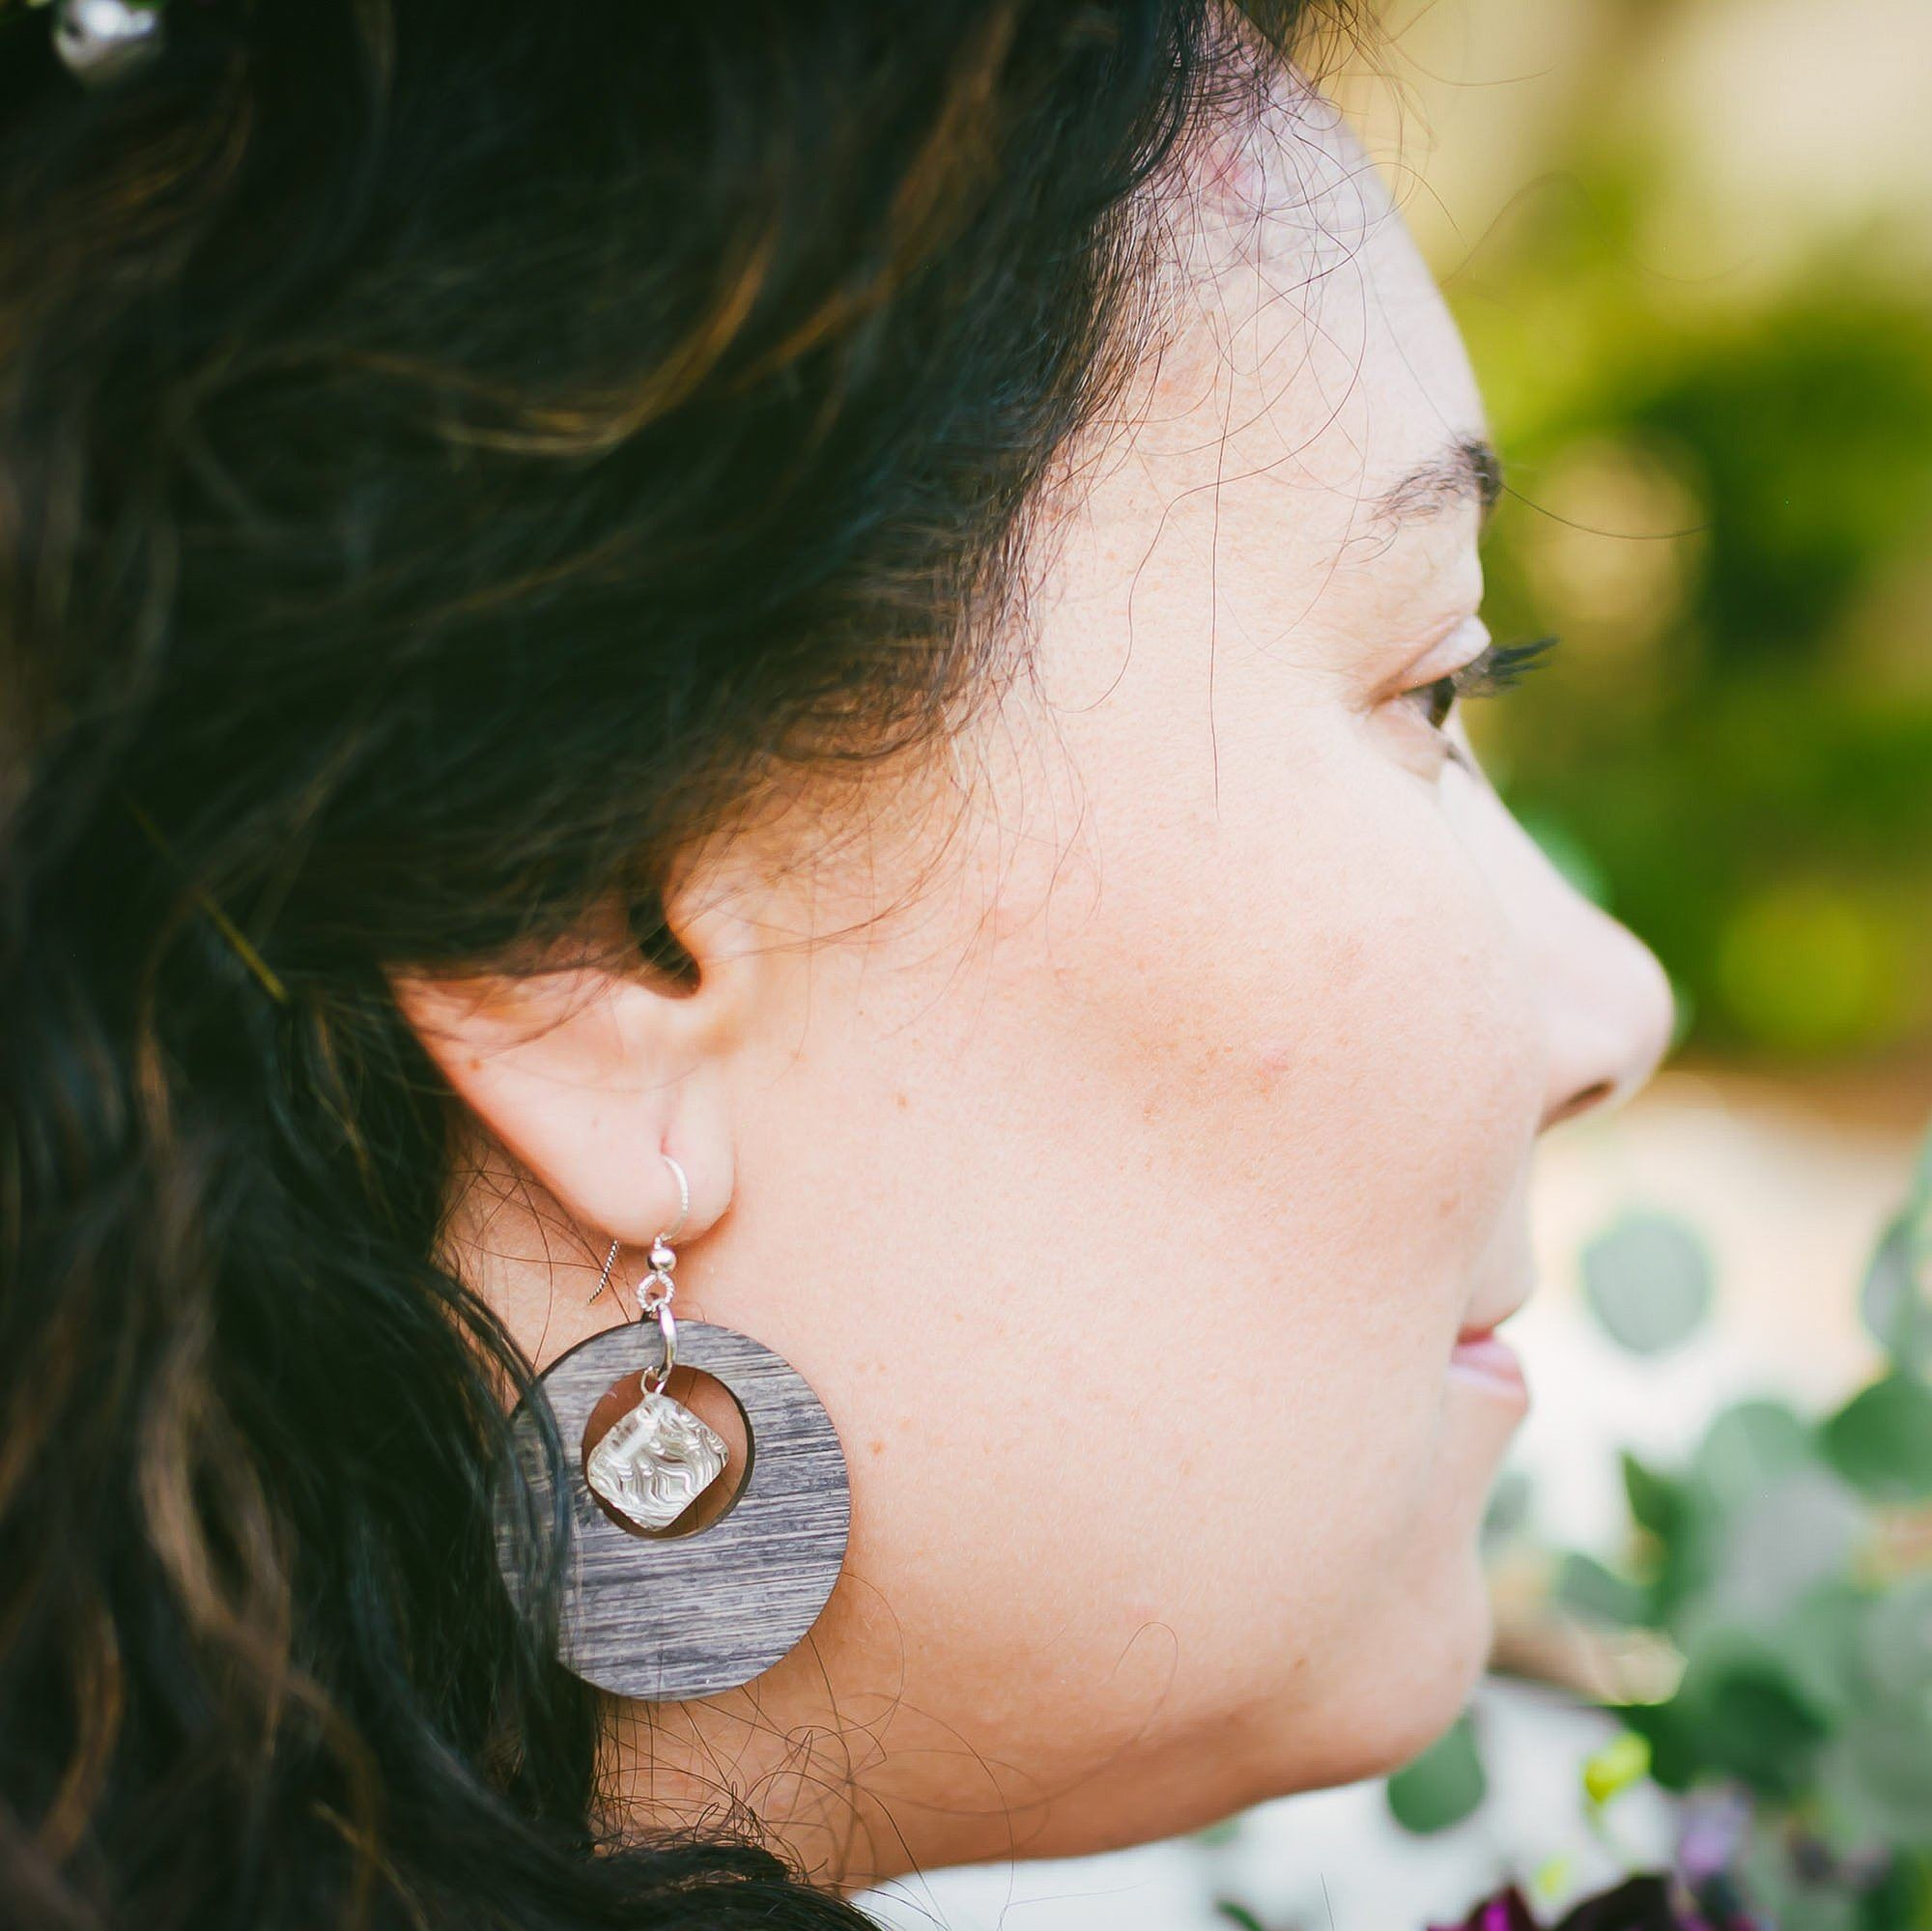 Large Feng Shui Inspired Woven Metal, Glass, and Bamboo Hoop Earrings in Silver or Gold